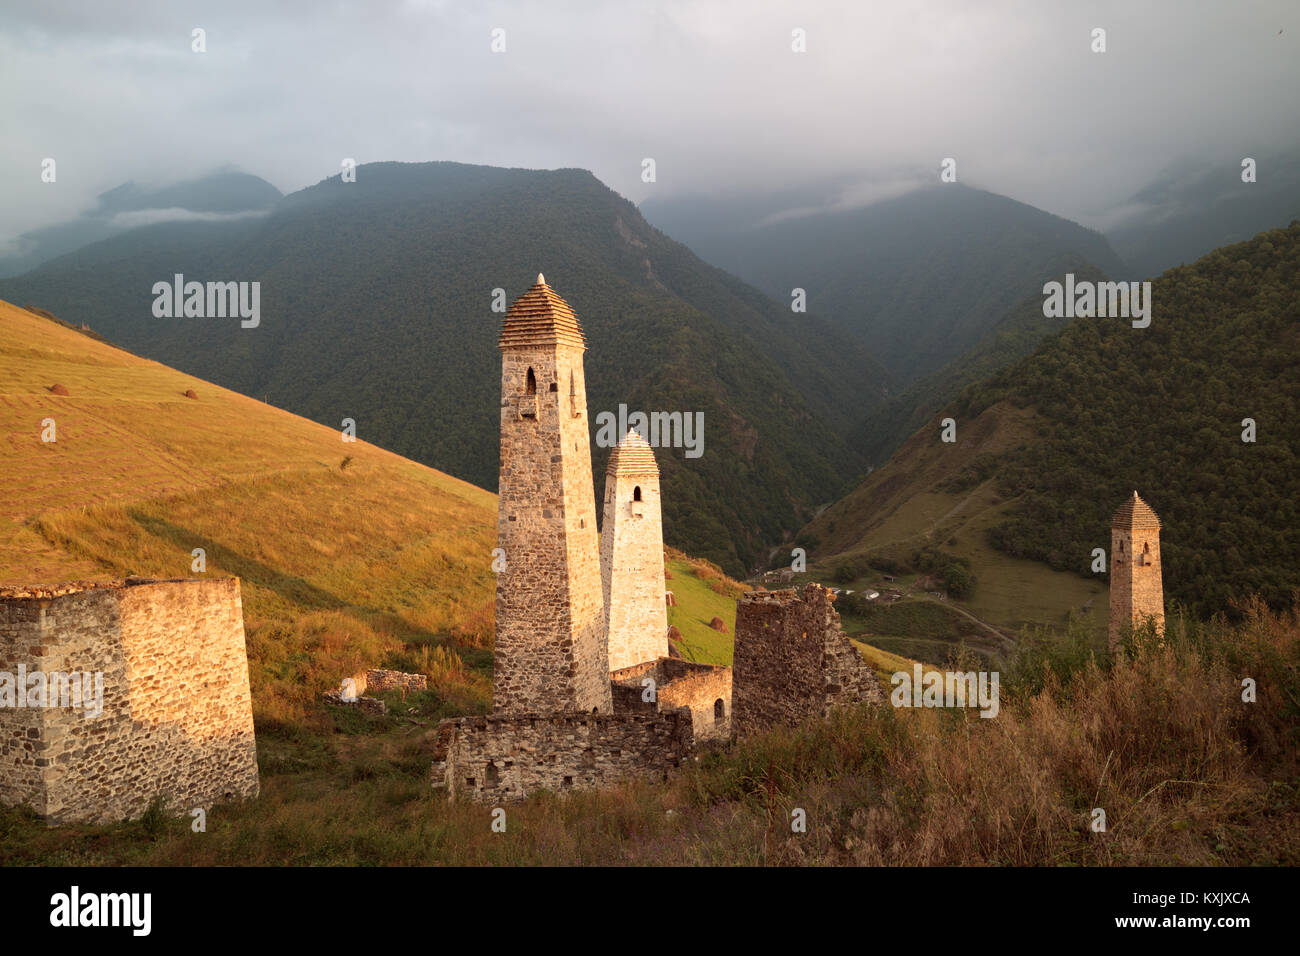 Golden sunset in Chechen/Ingush mountains, Erzi medieval architecture, North Caucasus Stock Photo